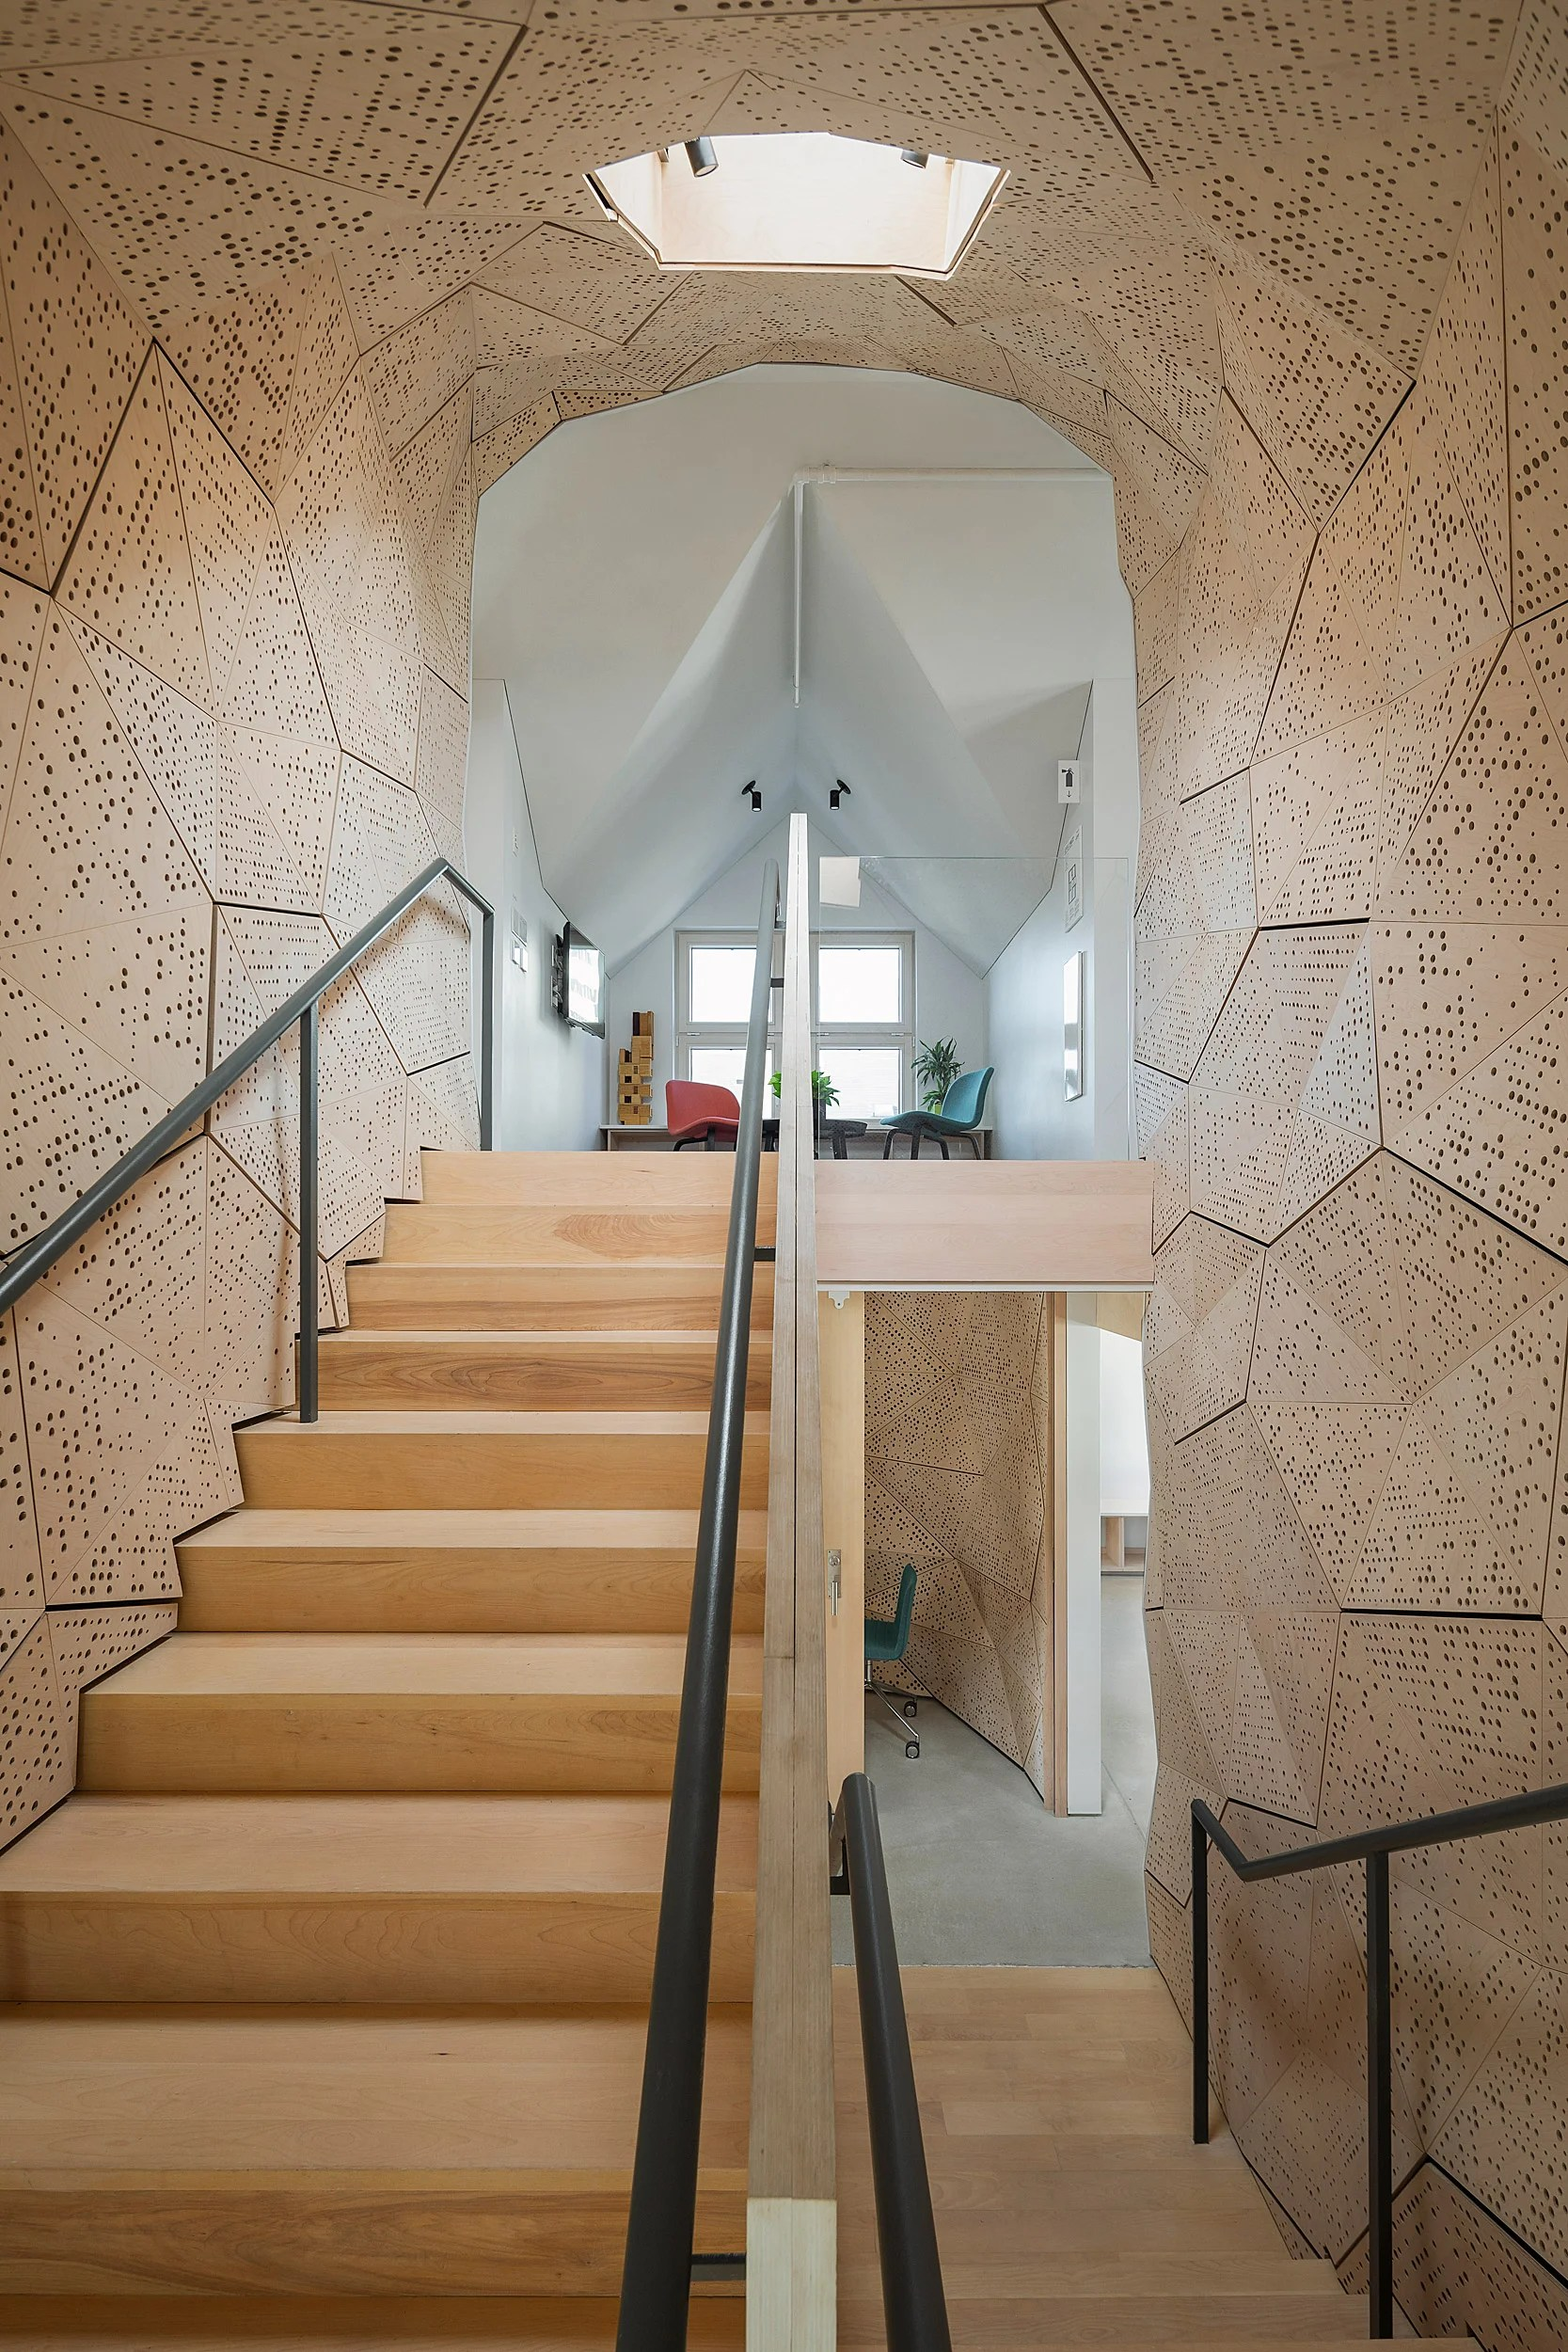 Staircase designed to reduce acoustic disturbance.